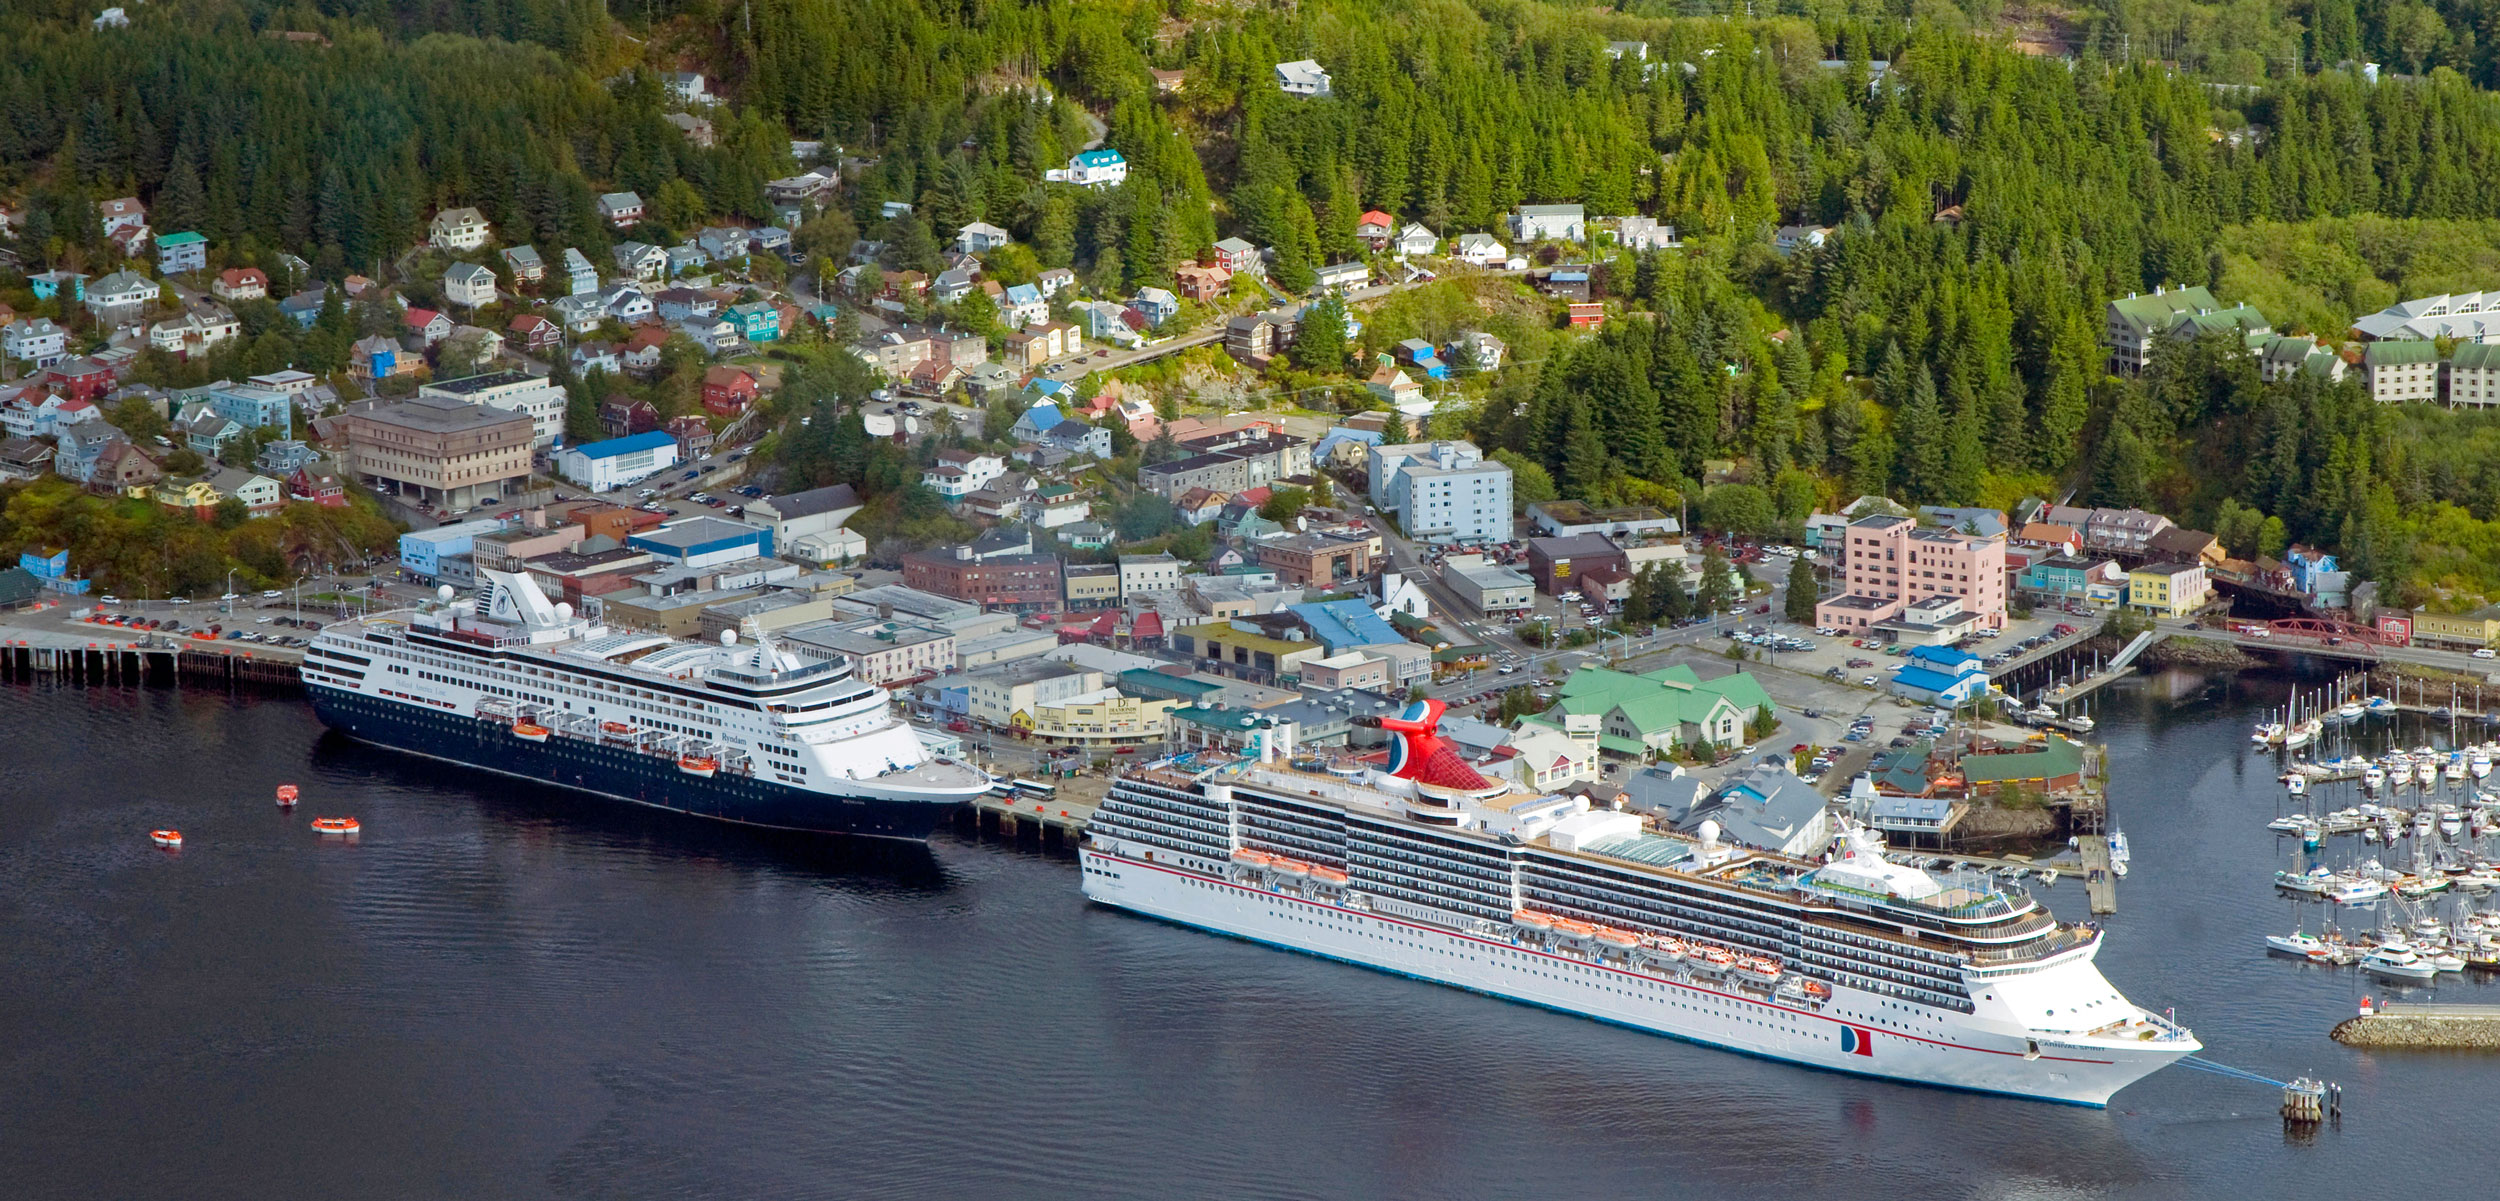 aerial photo of cruise ships in Ketchikan, Alaska